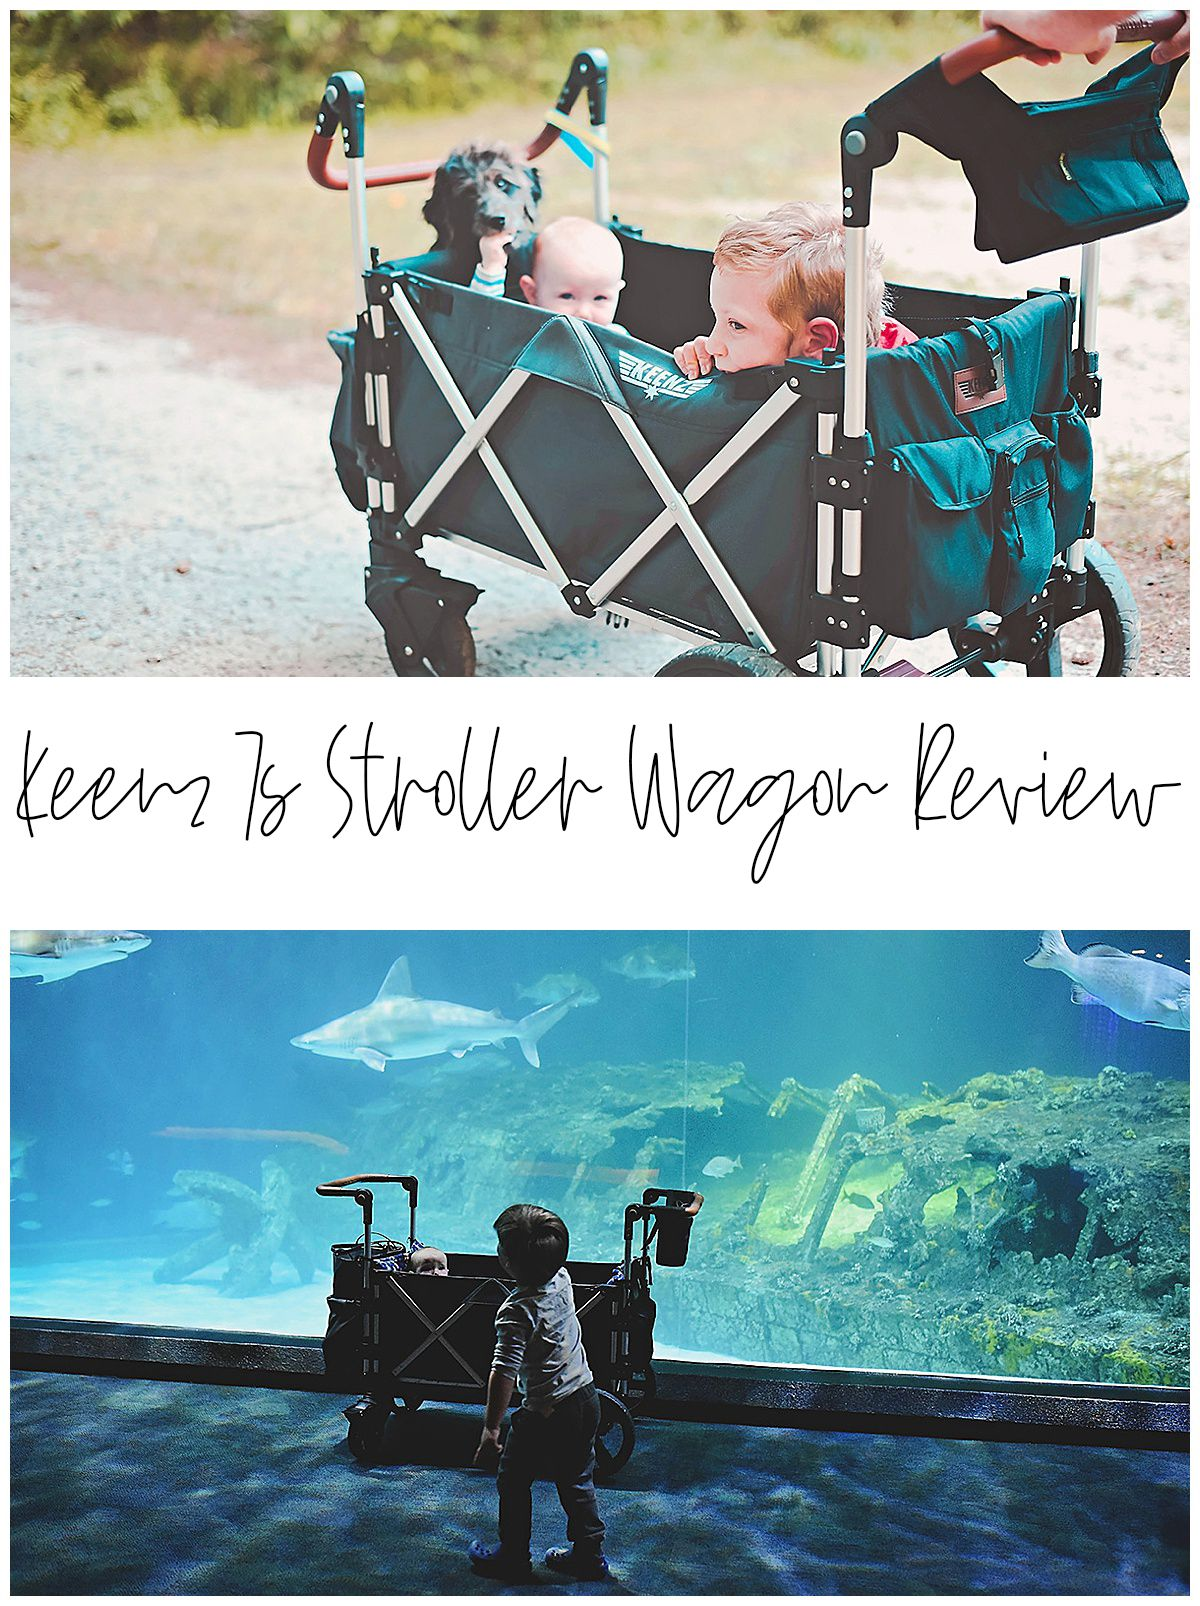 Keenz 7s Stroller Wagon Review Stroller, Wagon, Tiny humans